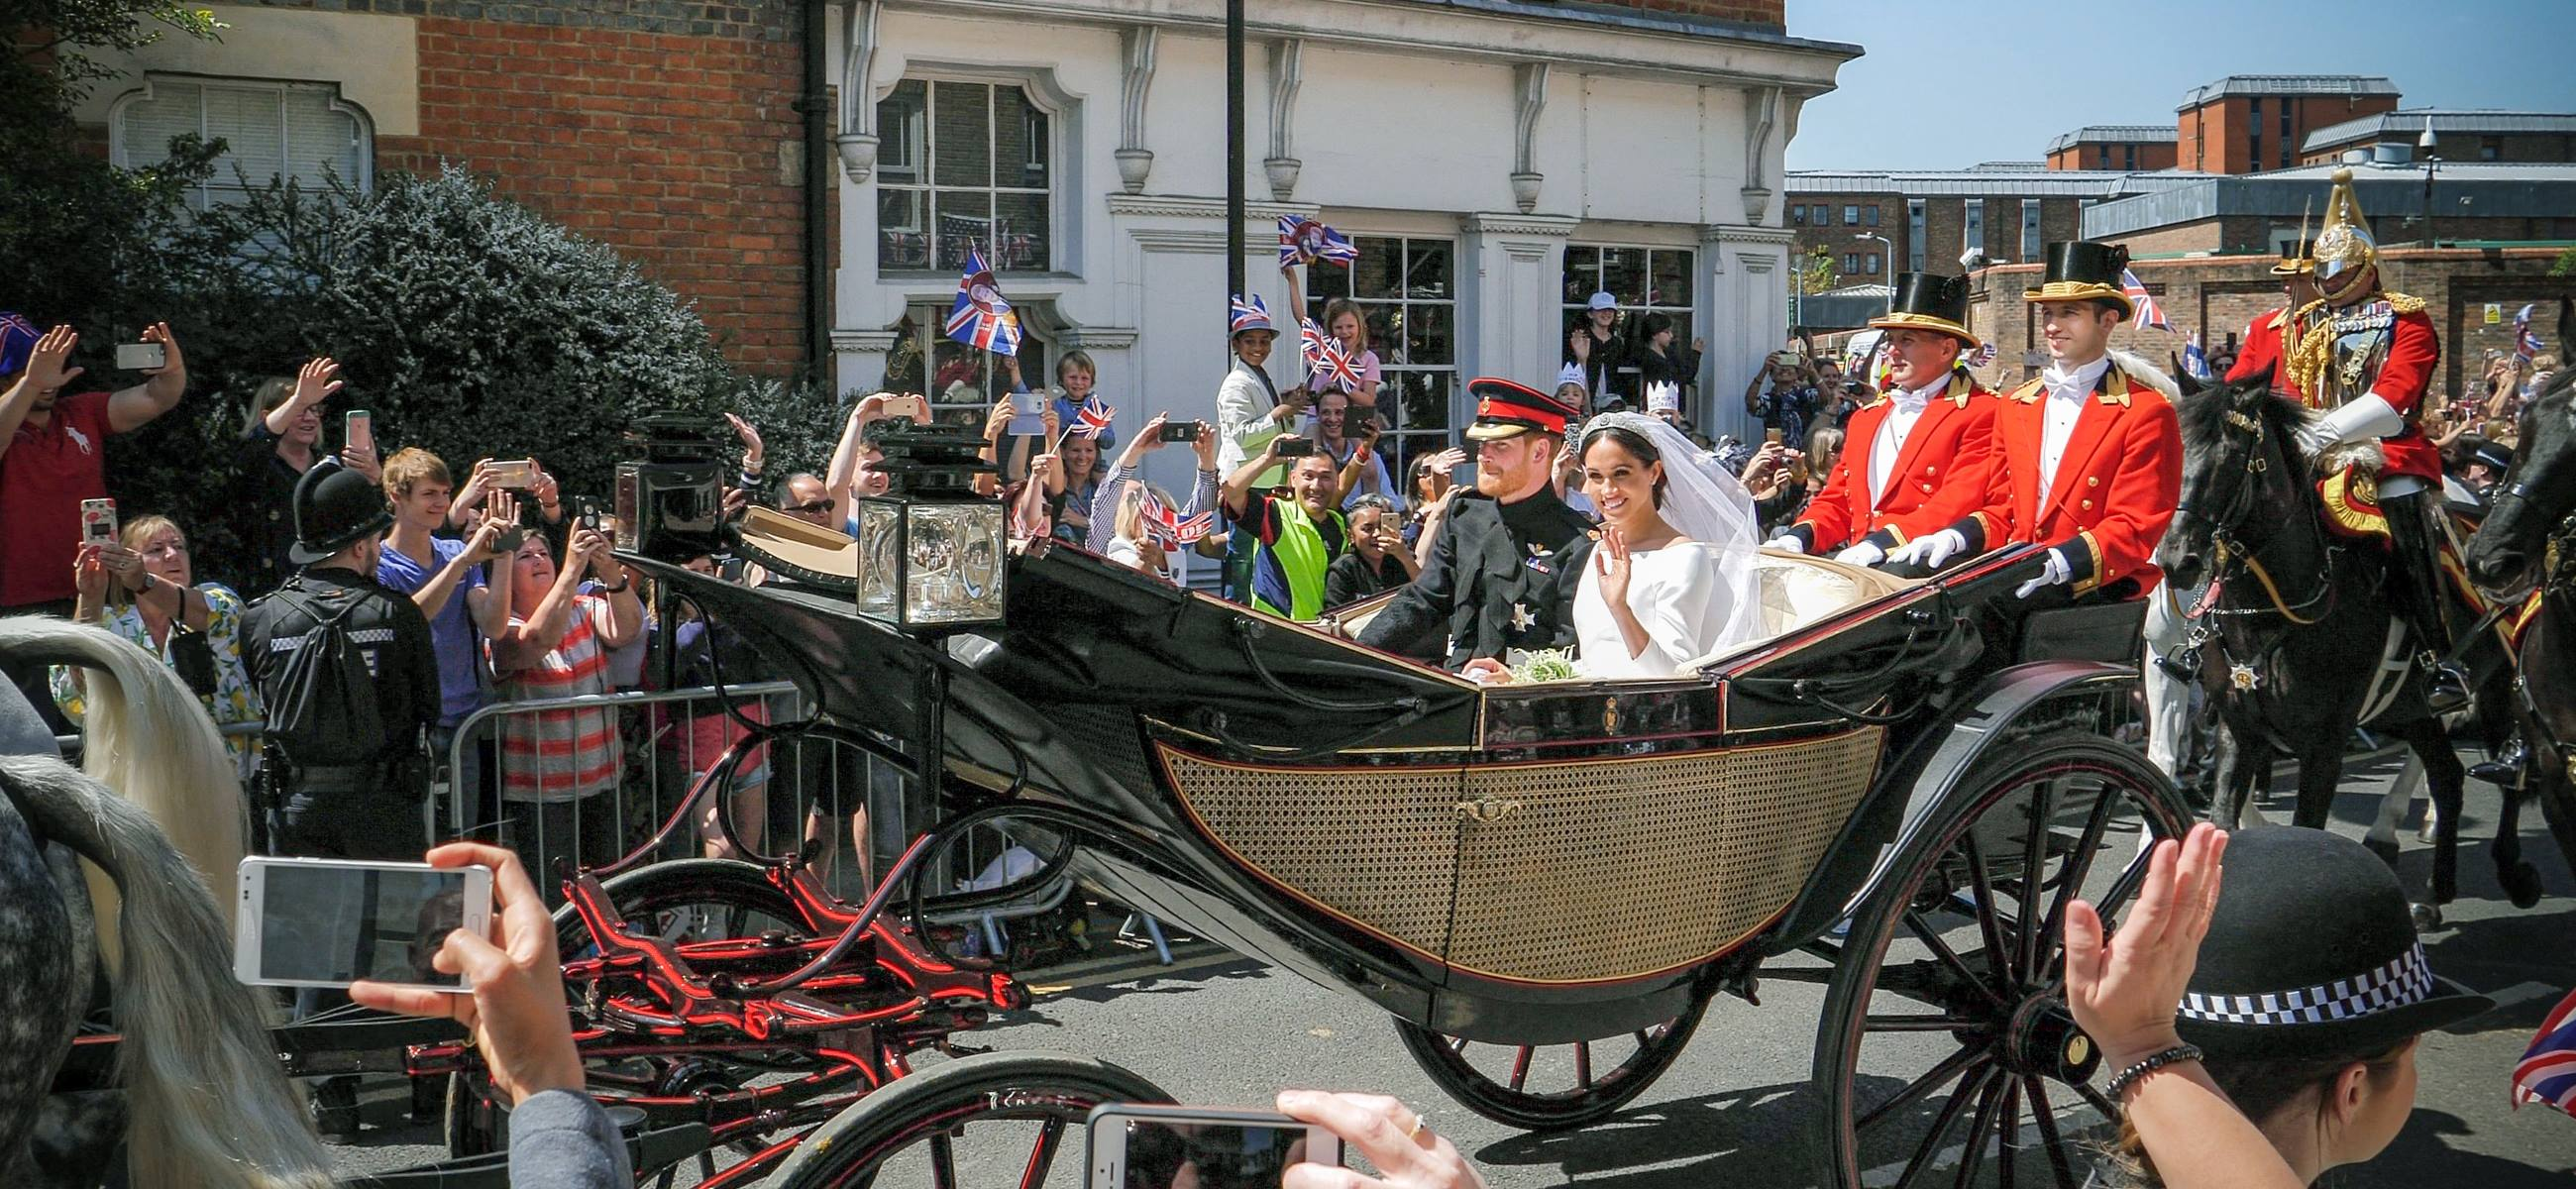 Windsor Castle Tours And The Royal Wedding